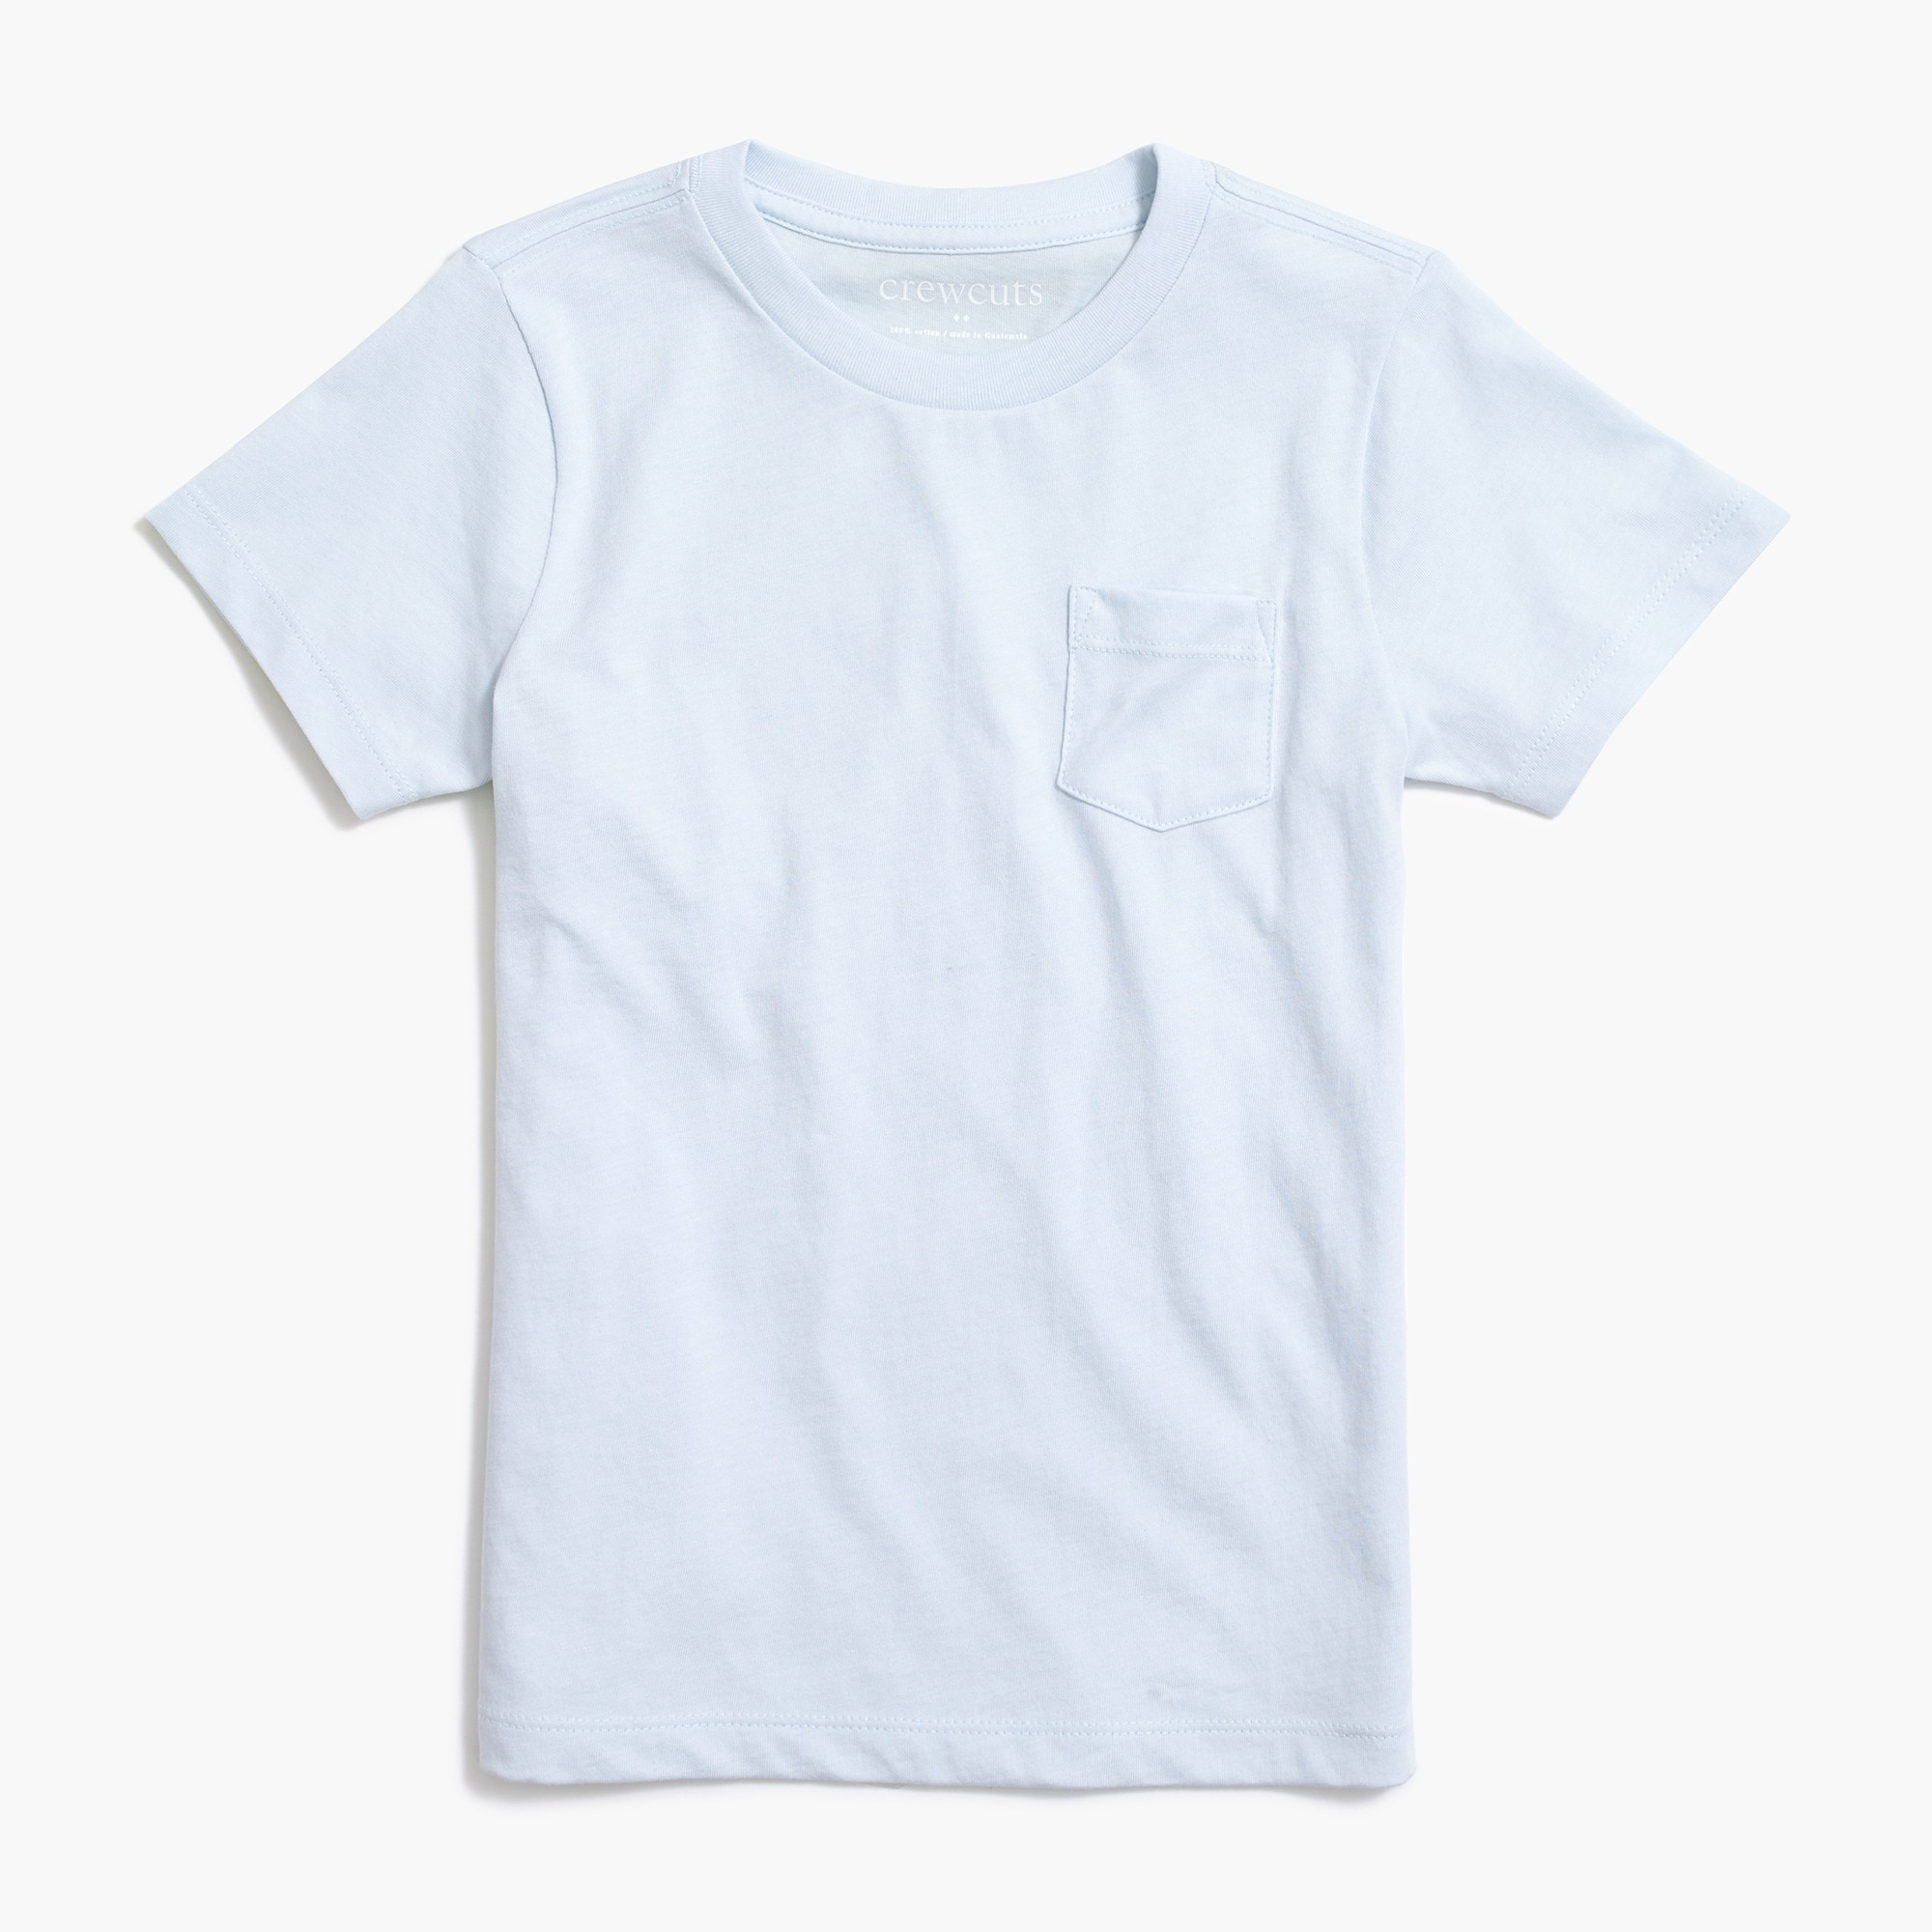 Image 1 for Kids' short-sleeve jersey pocket T-shirt